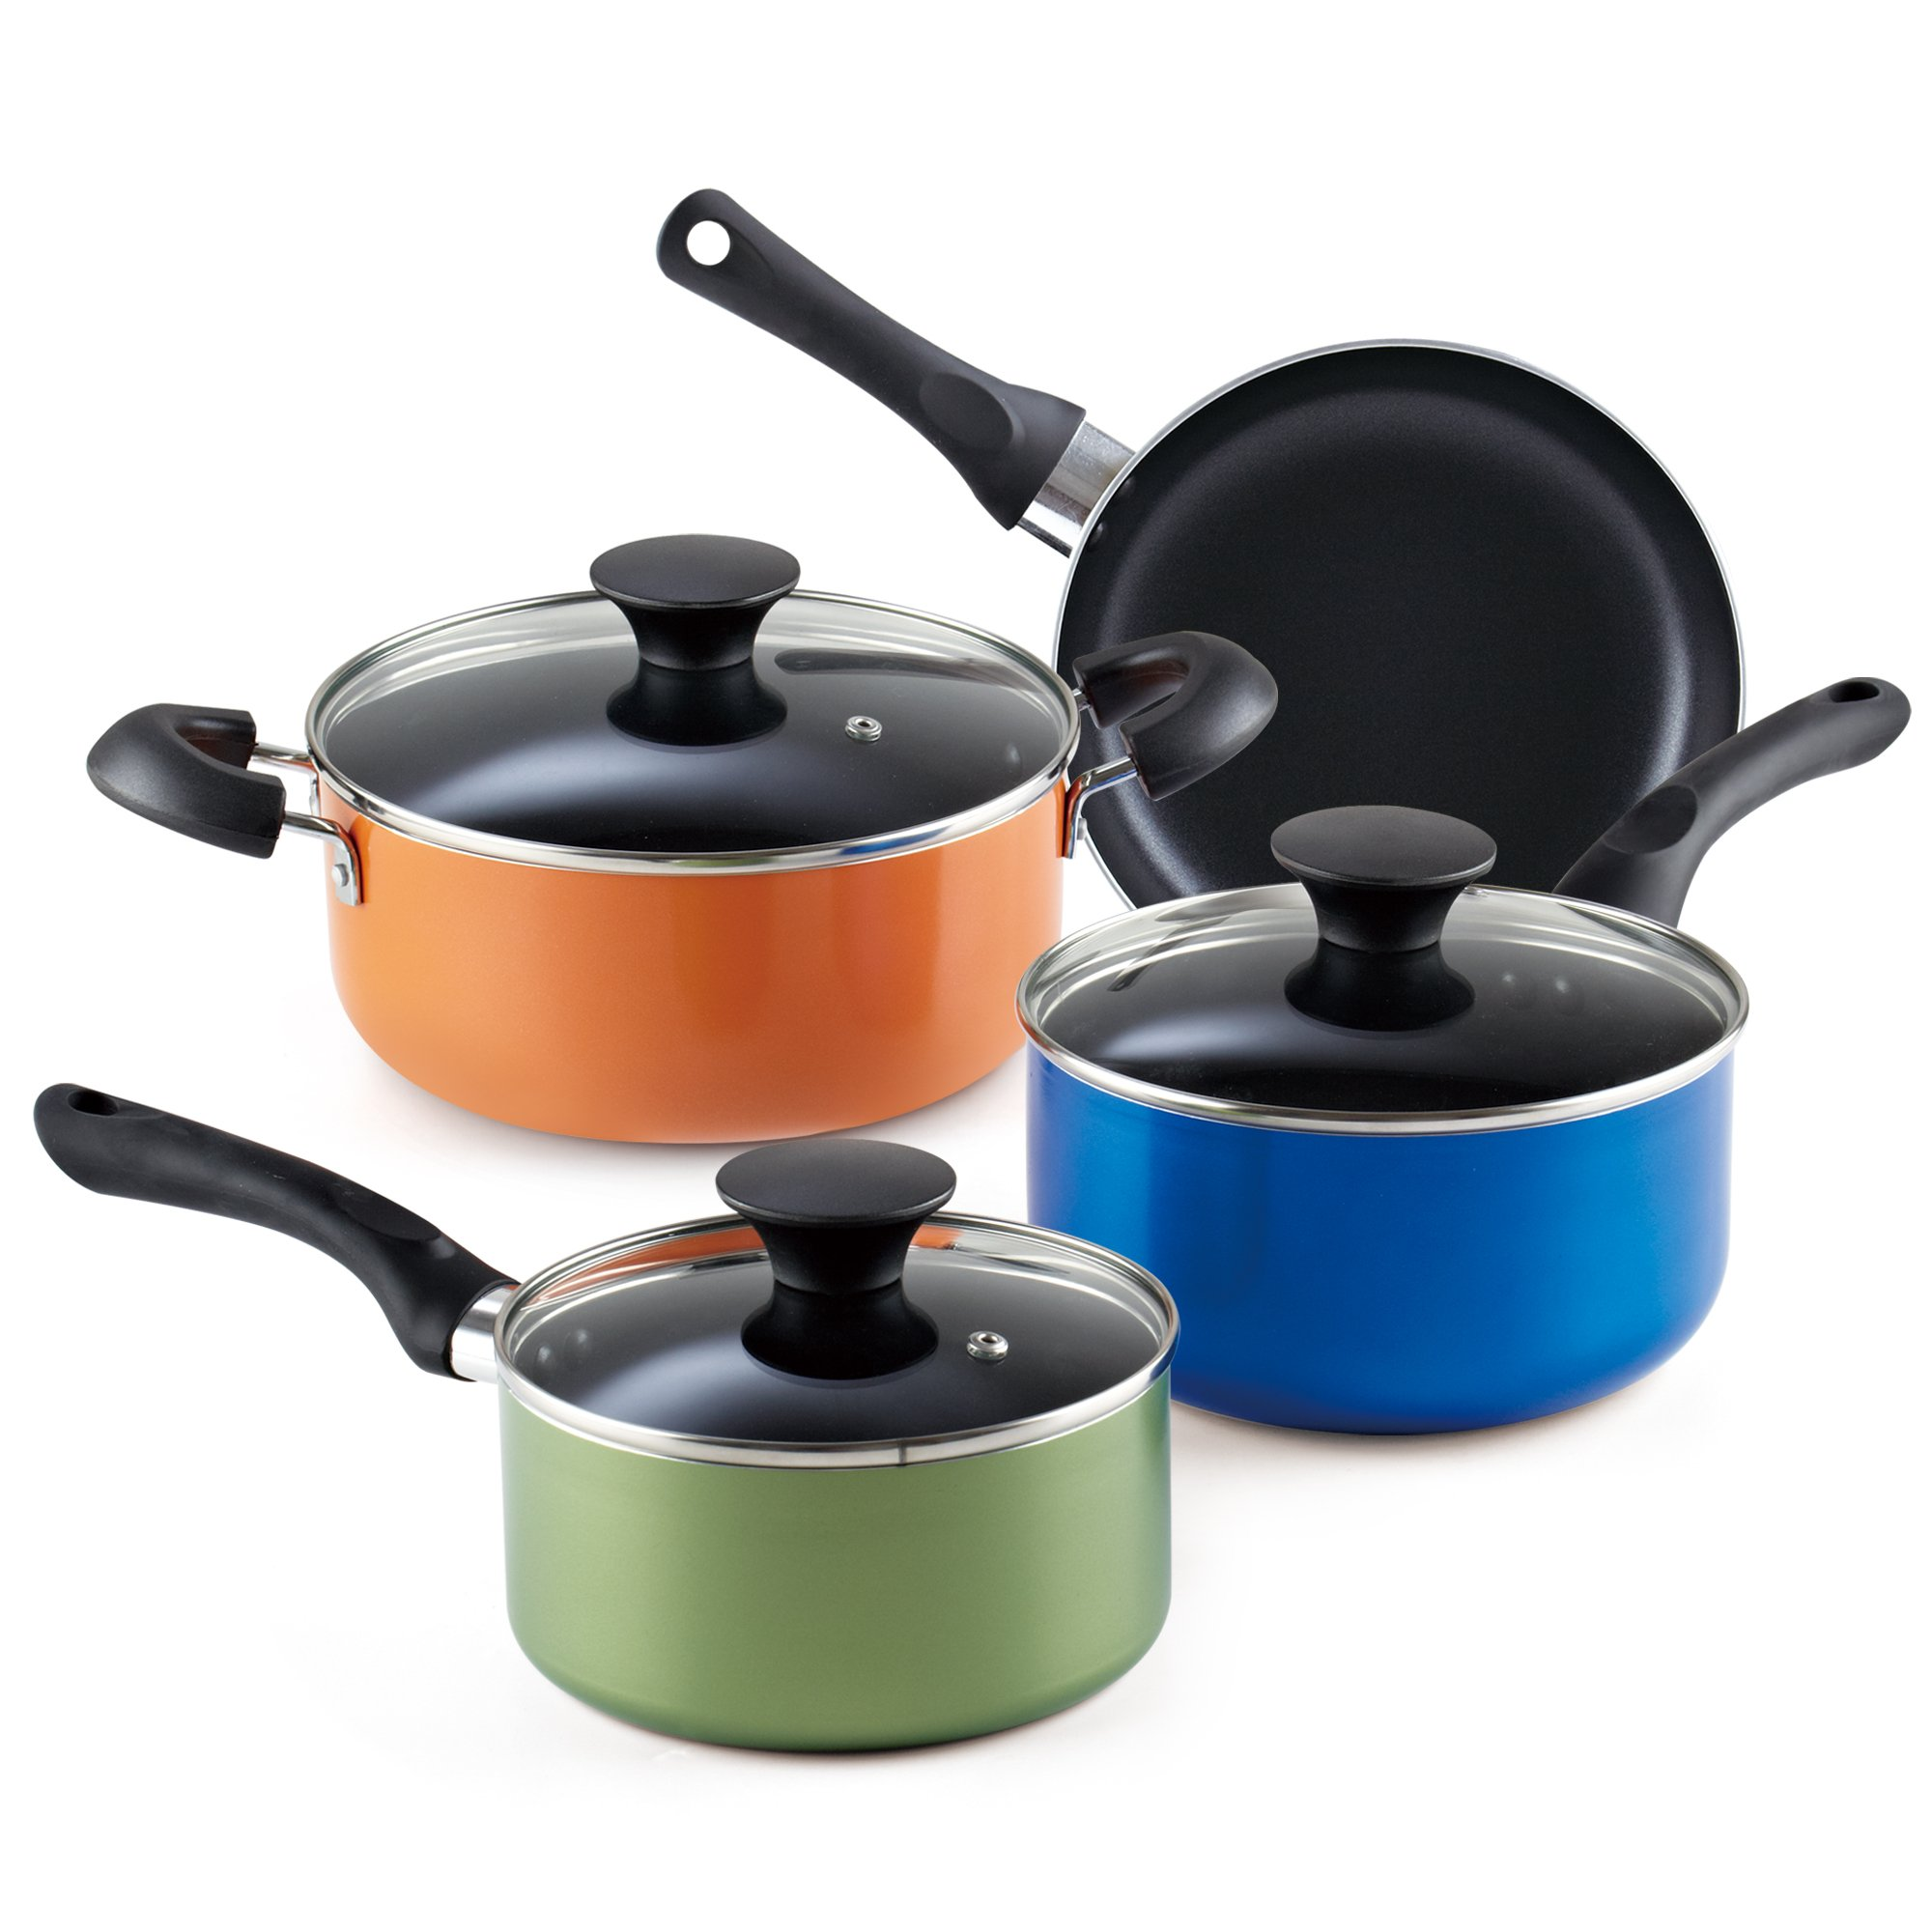 Cook N Home 7-Piece Nonstick Cookware Starter Set, Multicolor